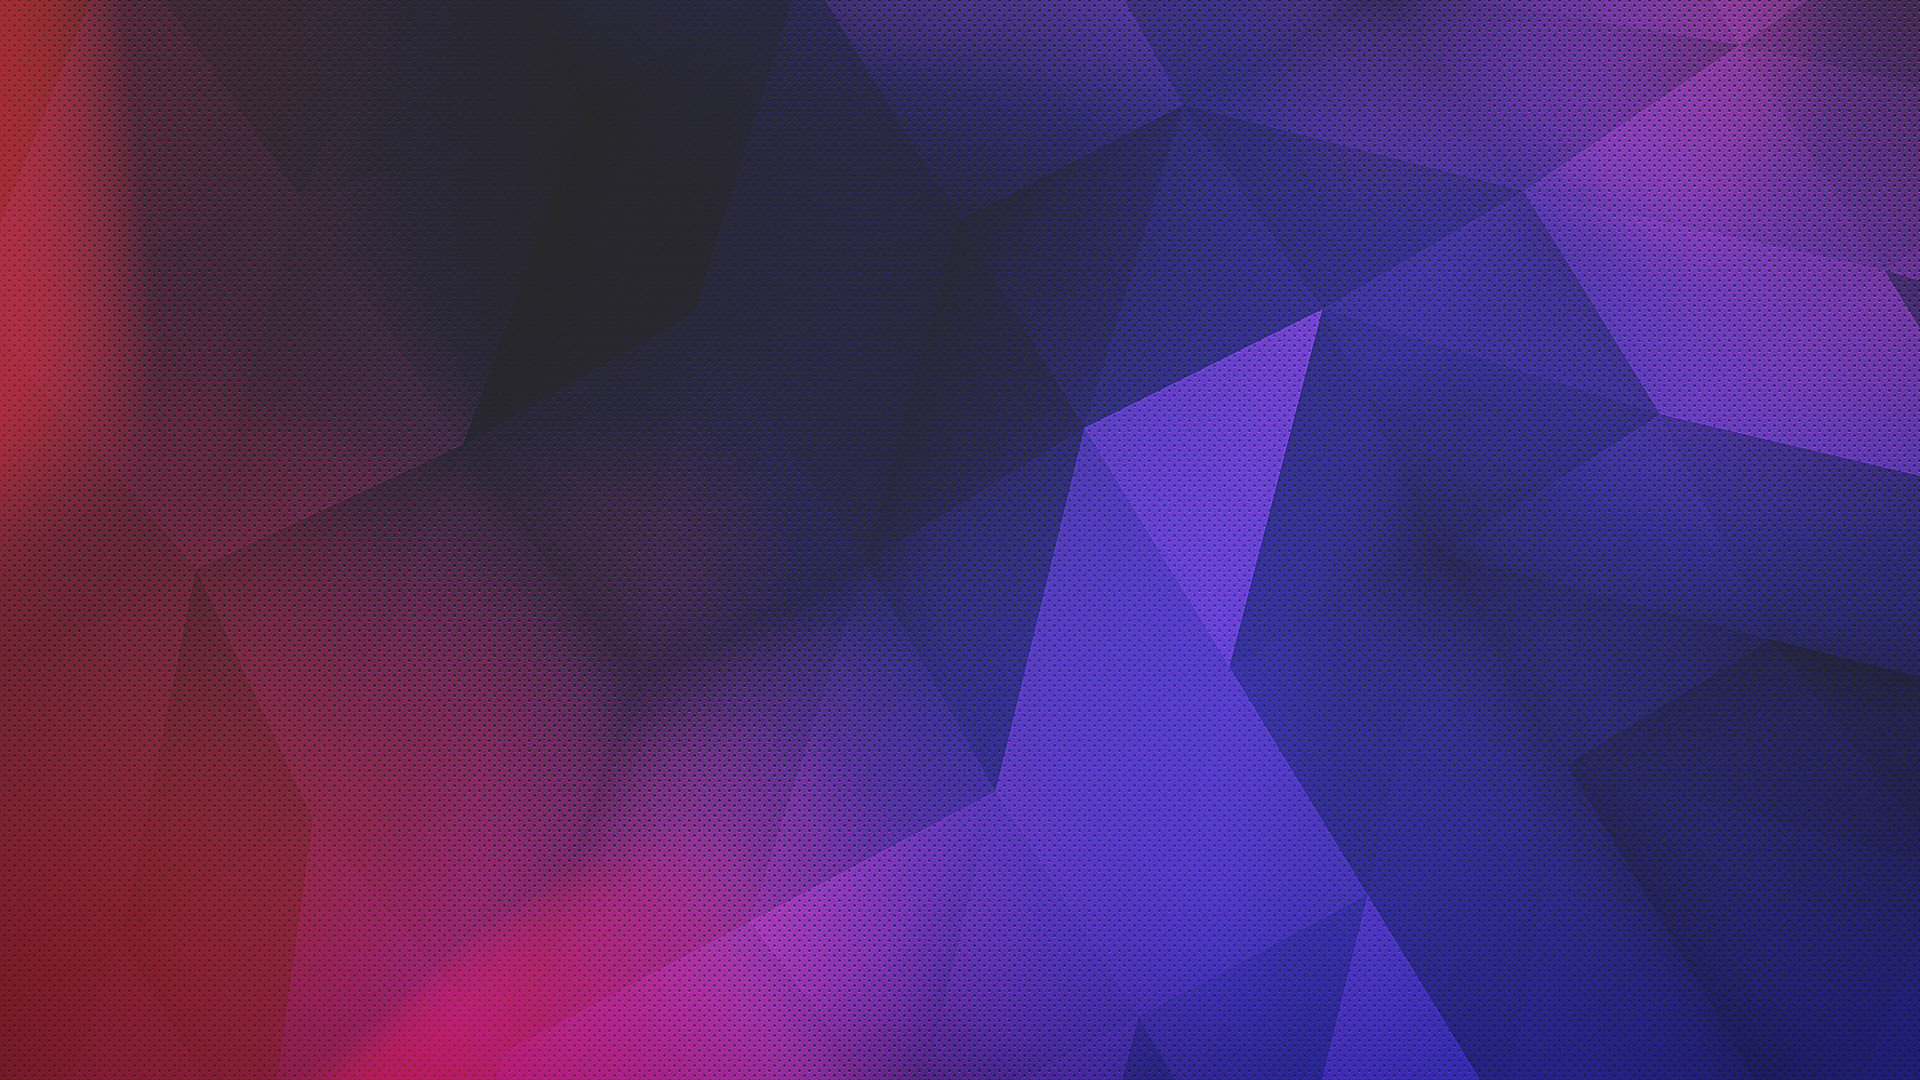 Download full hd 1920x1080 Purple desktop background ID:405357 for free